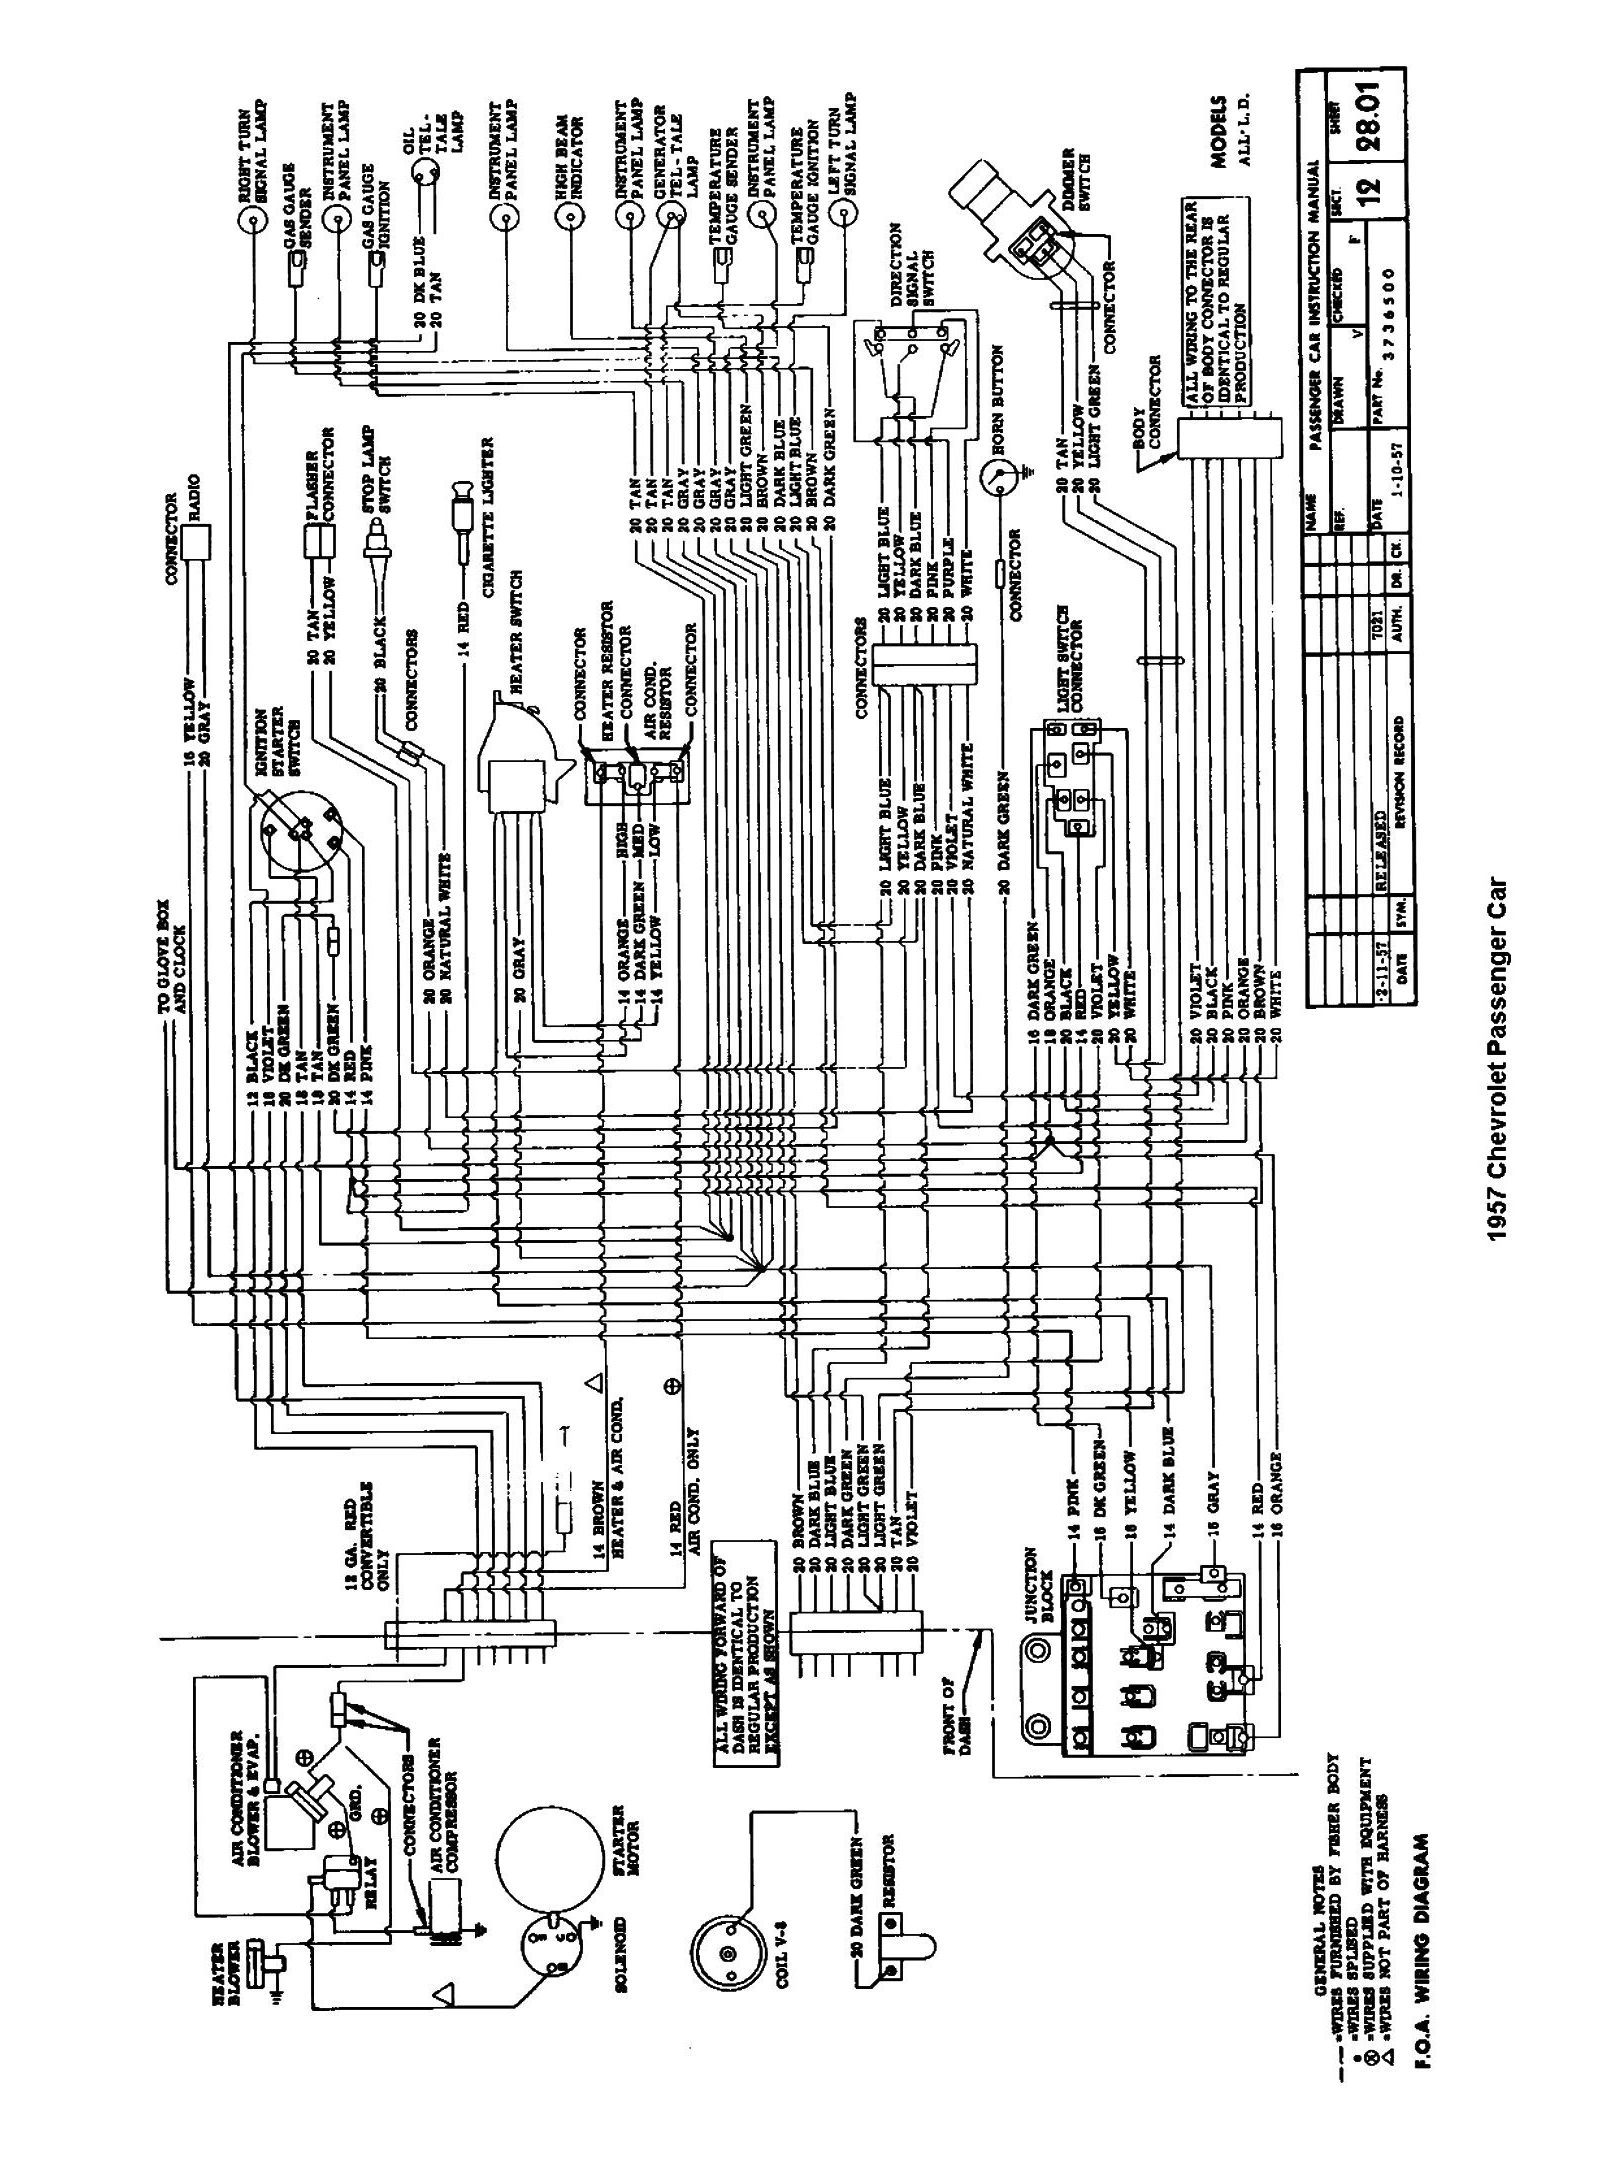 Chevy Wiring Diagrams 1957 Power Window Diagram Passenger Car 2